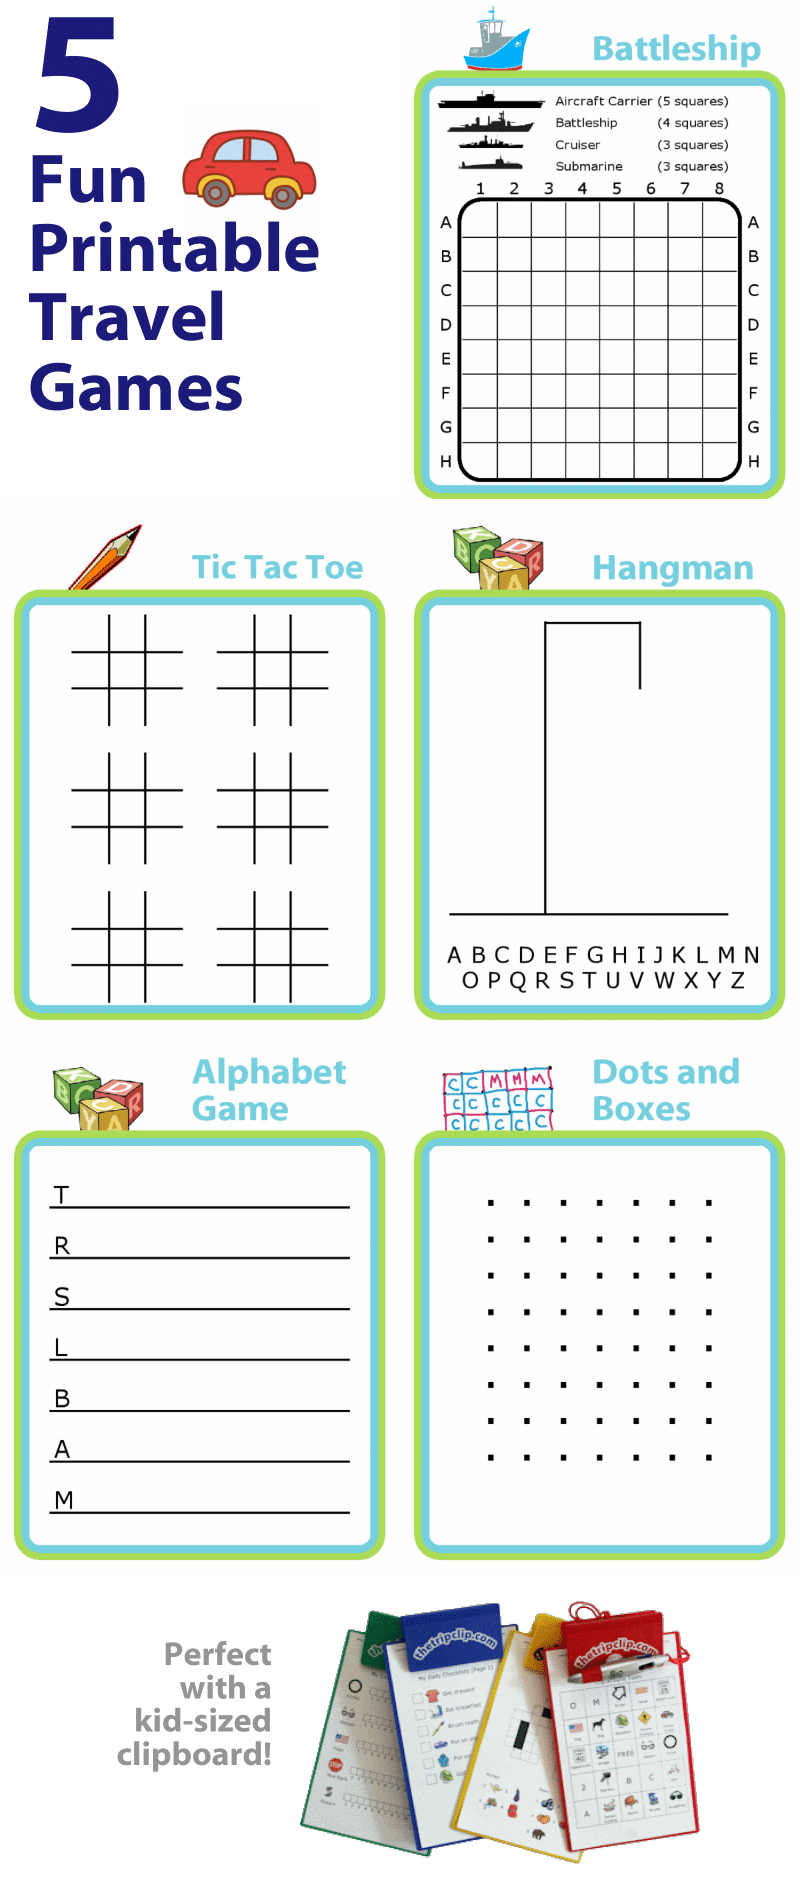 Dots and Boxes, Battleship, Tic Tac Toe, Hangman, and the Alphabet Game.